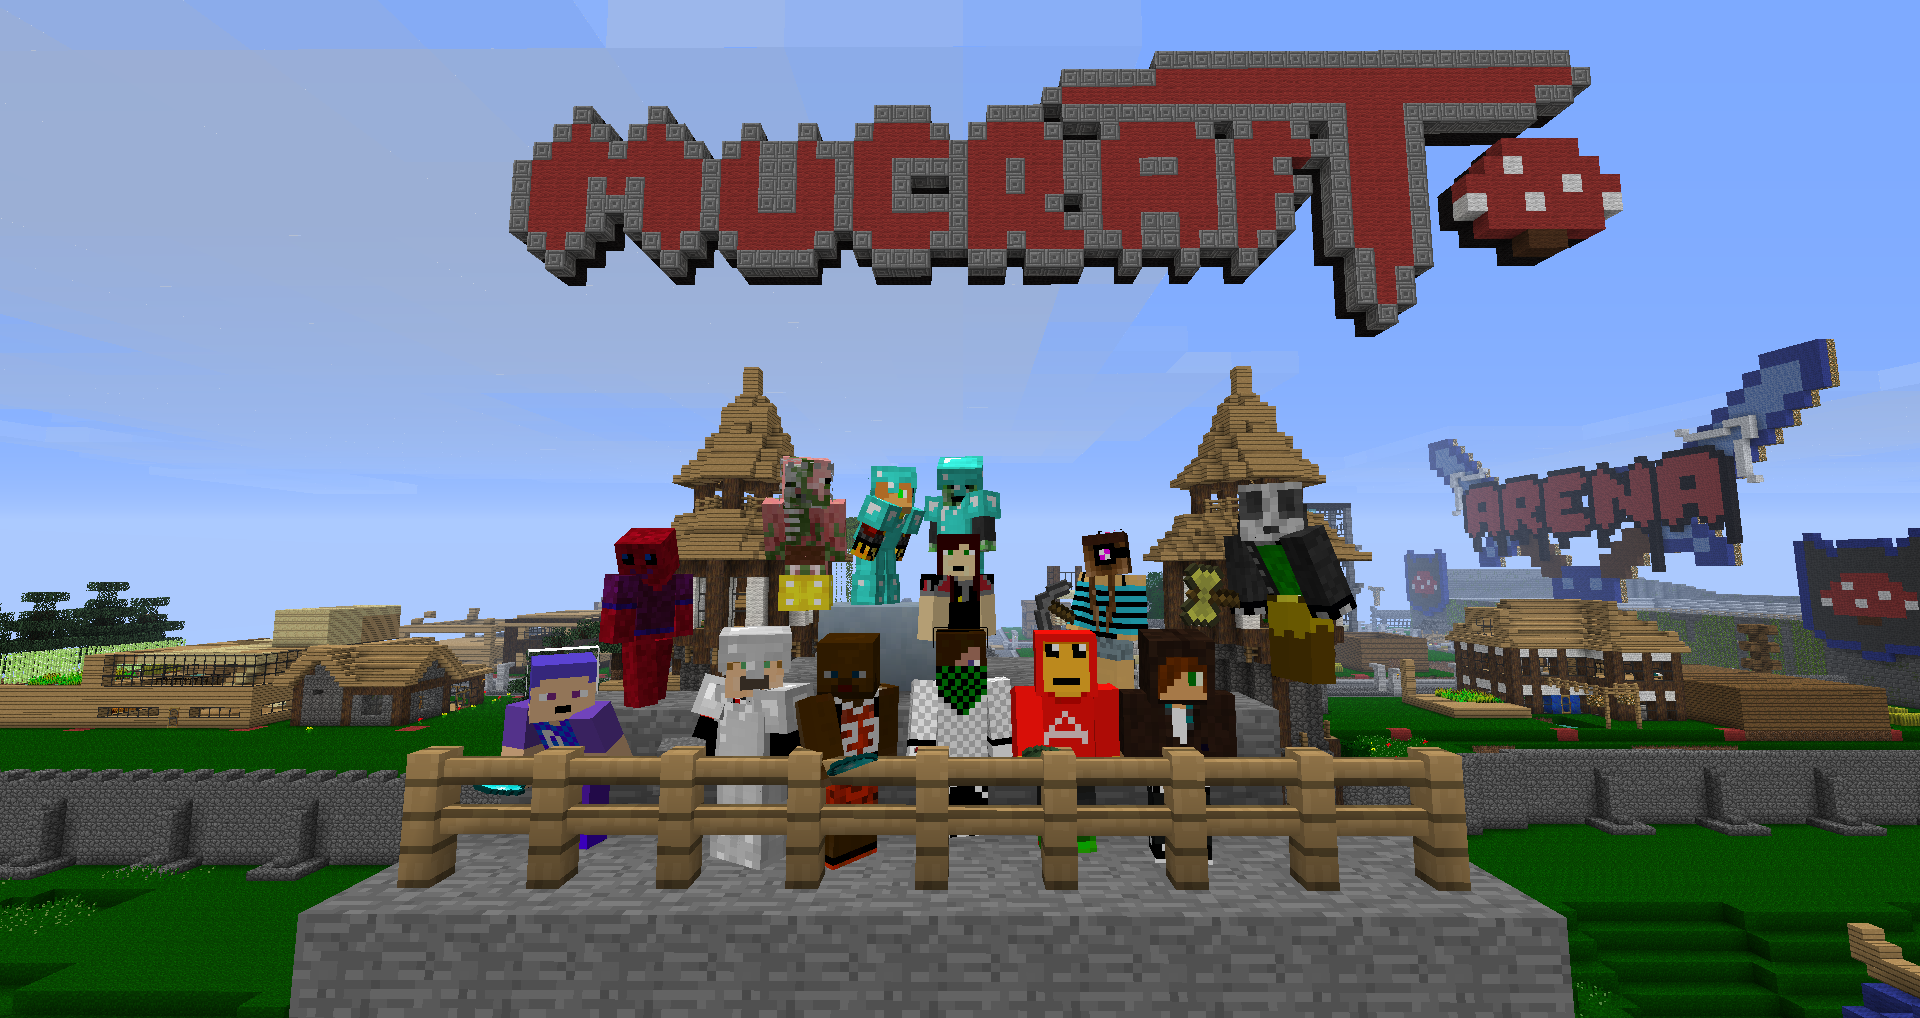 Screenshot from the minecraft server MuCraft 2012